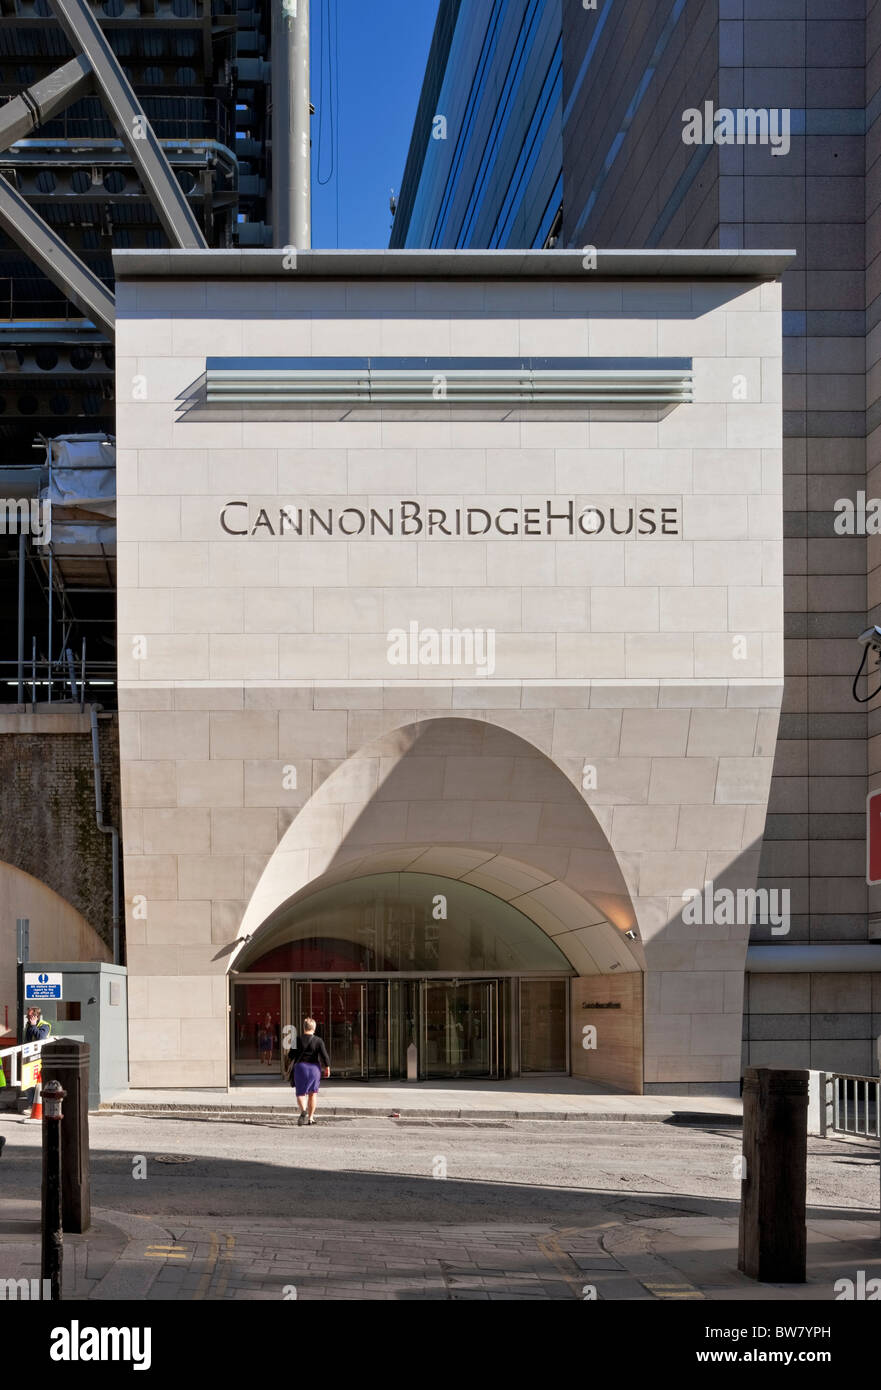 Stone portico entrance for Cannon Bridge House in the City of London. - Stock Image